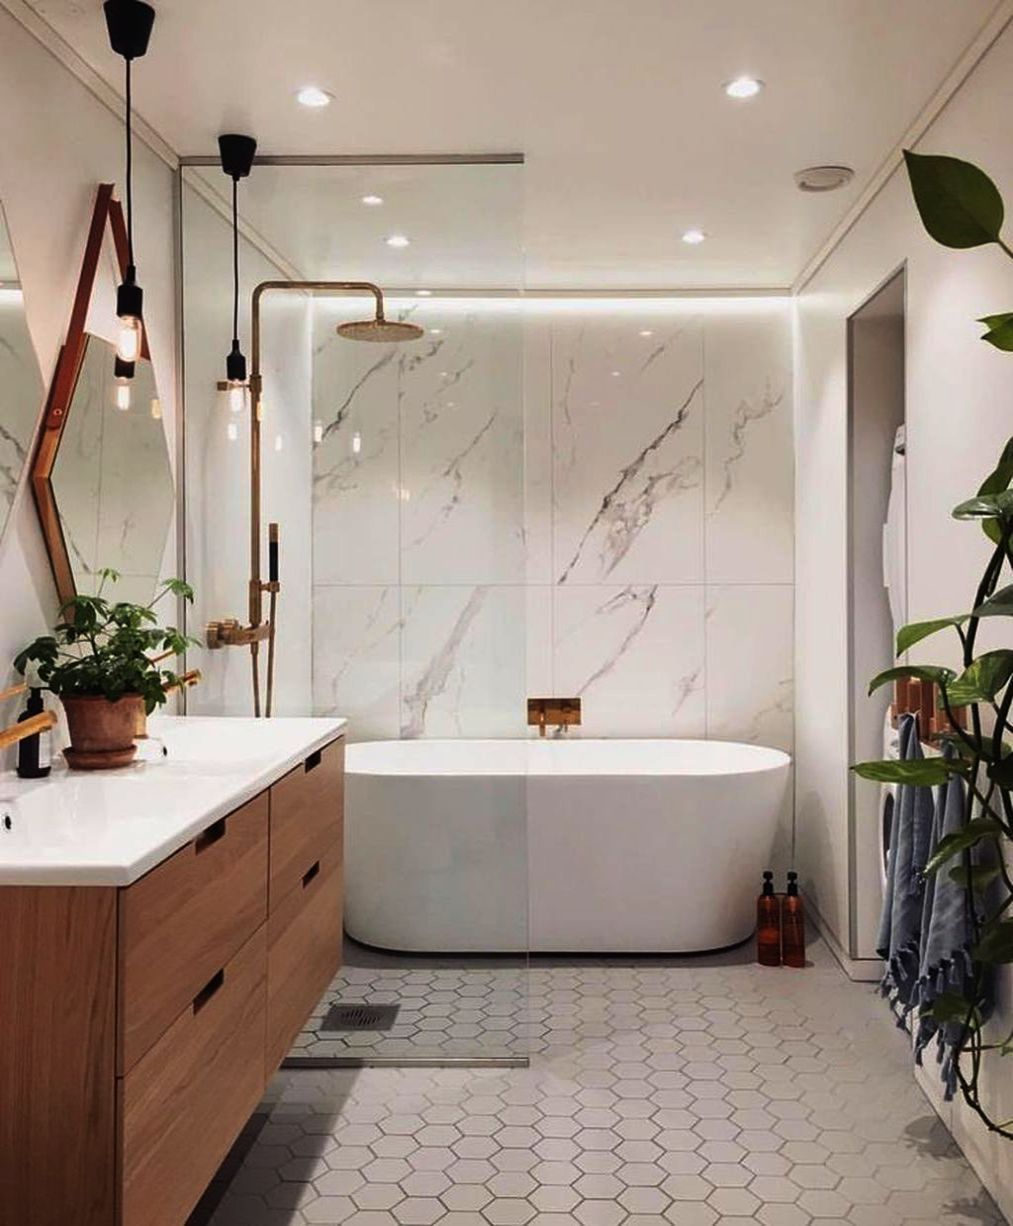 Minimalist Bathroom Ideas Pinterest Via Bathroom Ideas Double Vanity Both Bathroom Ideas Master Bat Modern Master Bathroom New Bathroom Designs Modern Bathroom